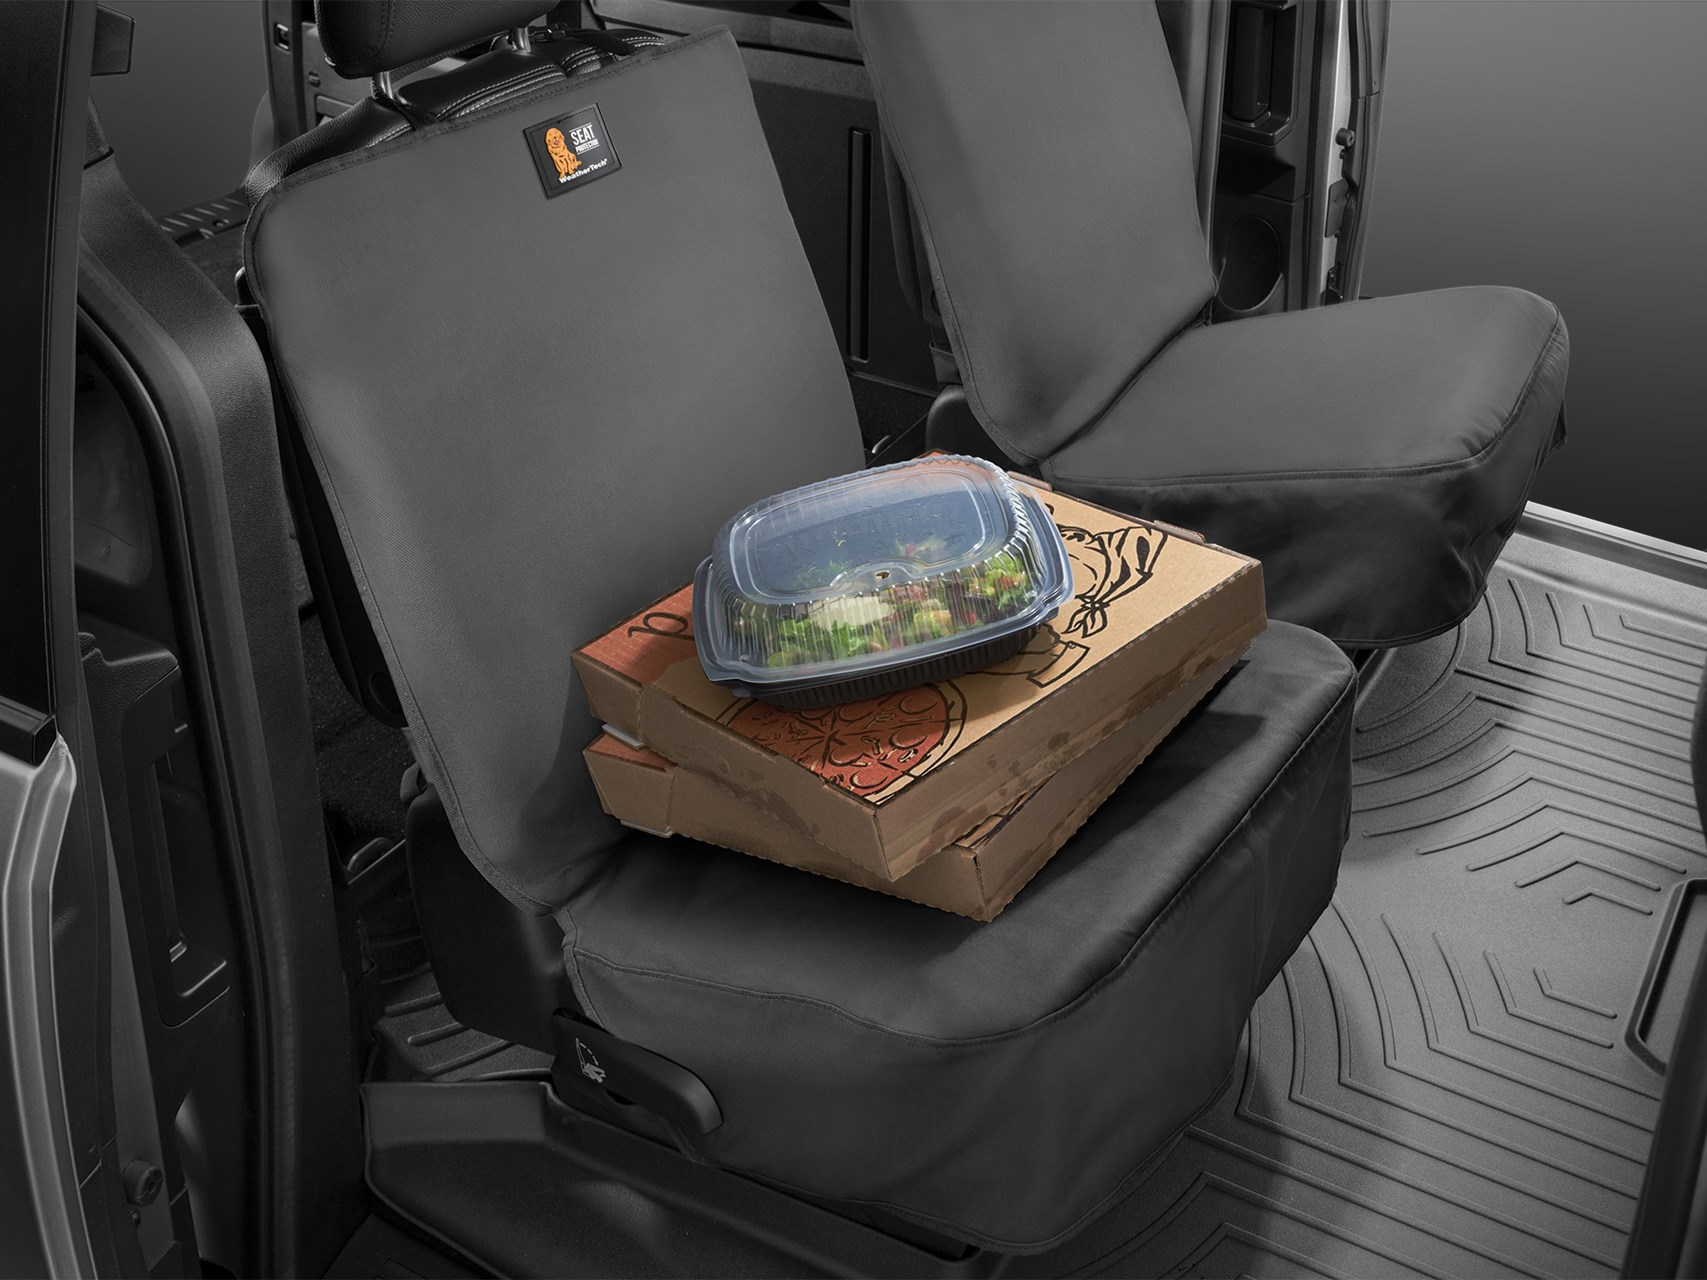 Seat_Protector_Pizza_Salad_Bucket_Blk